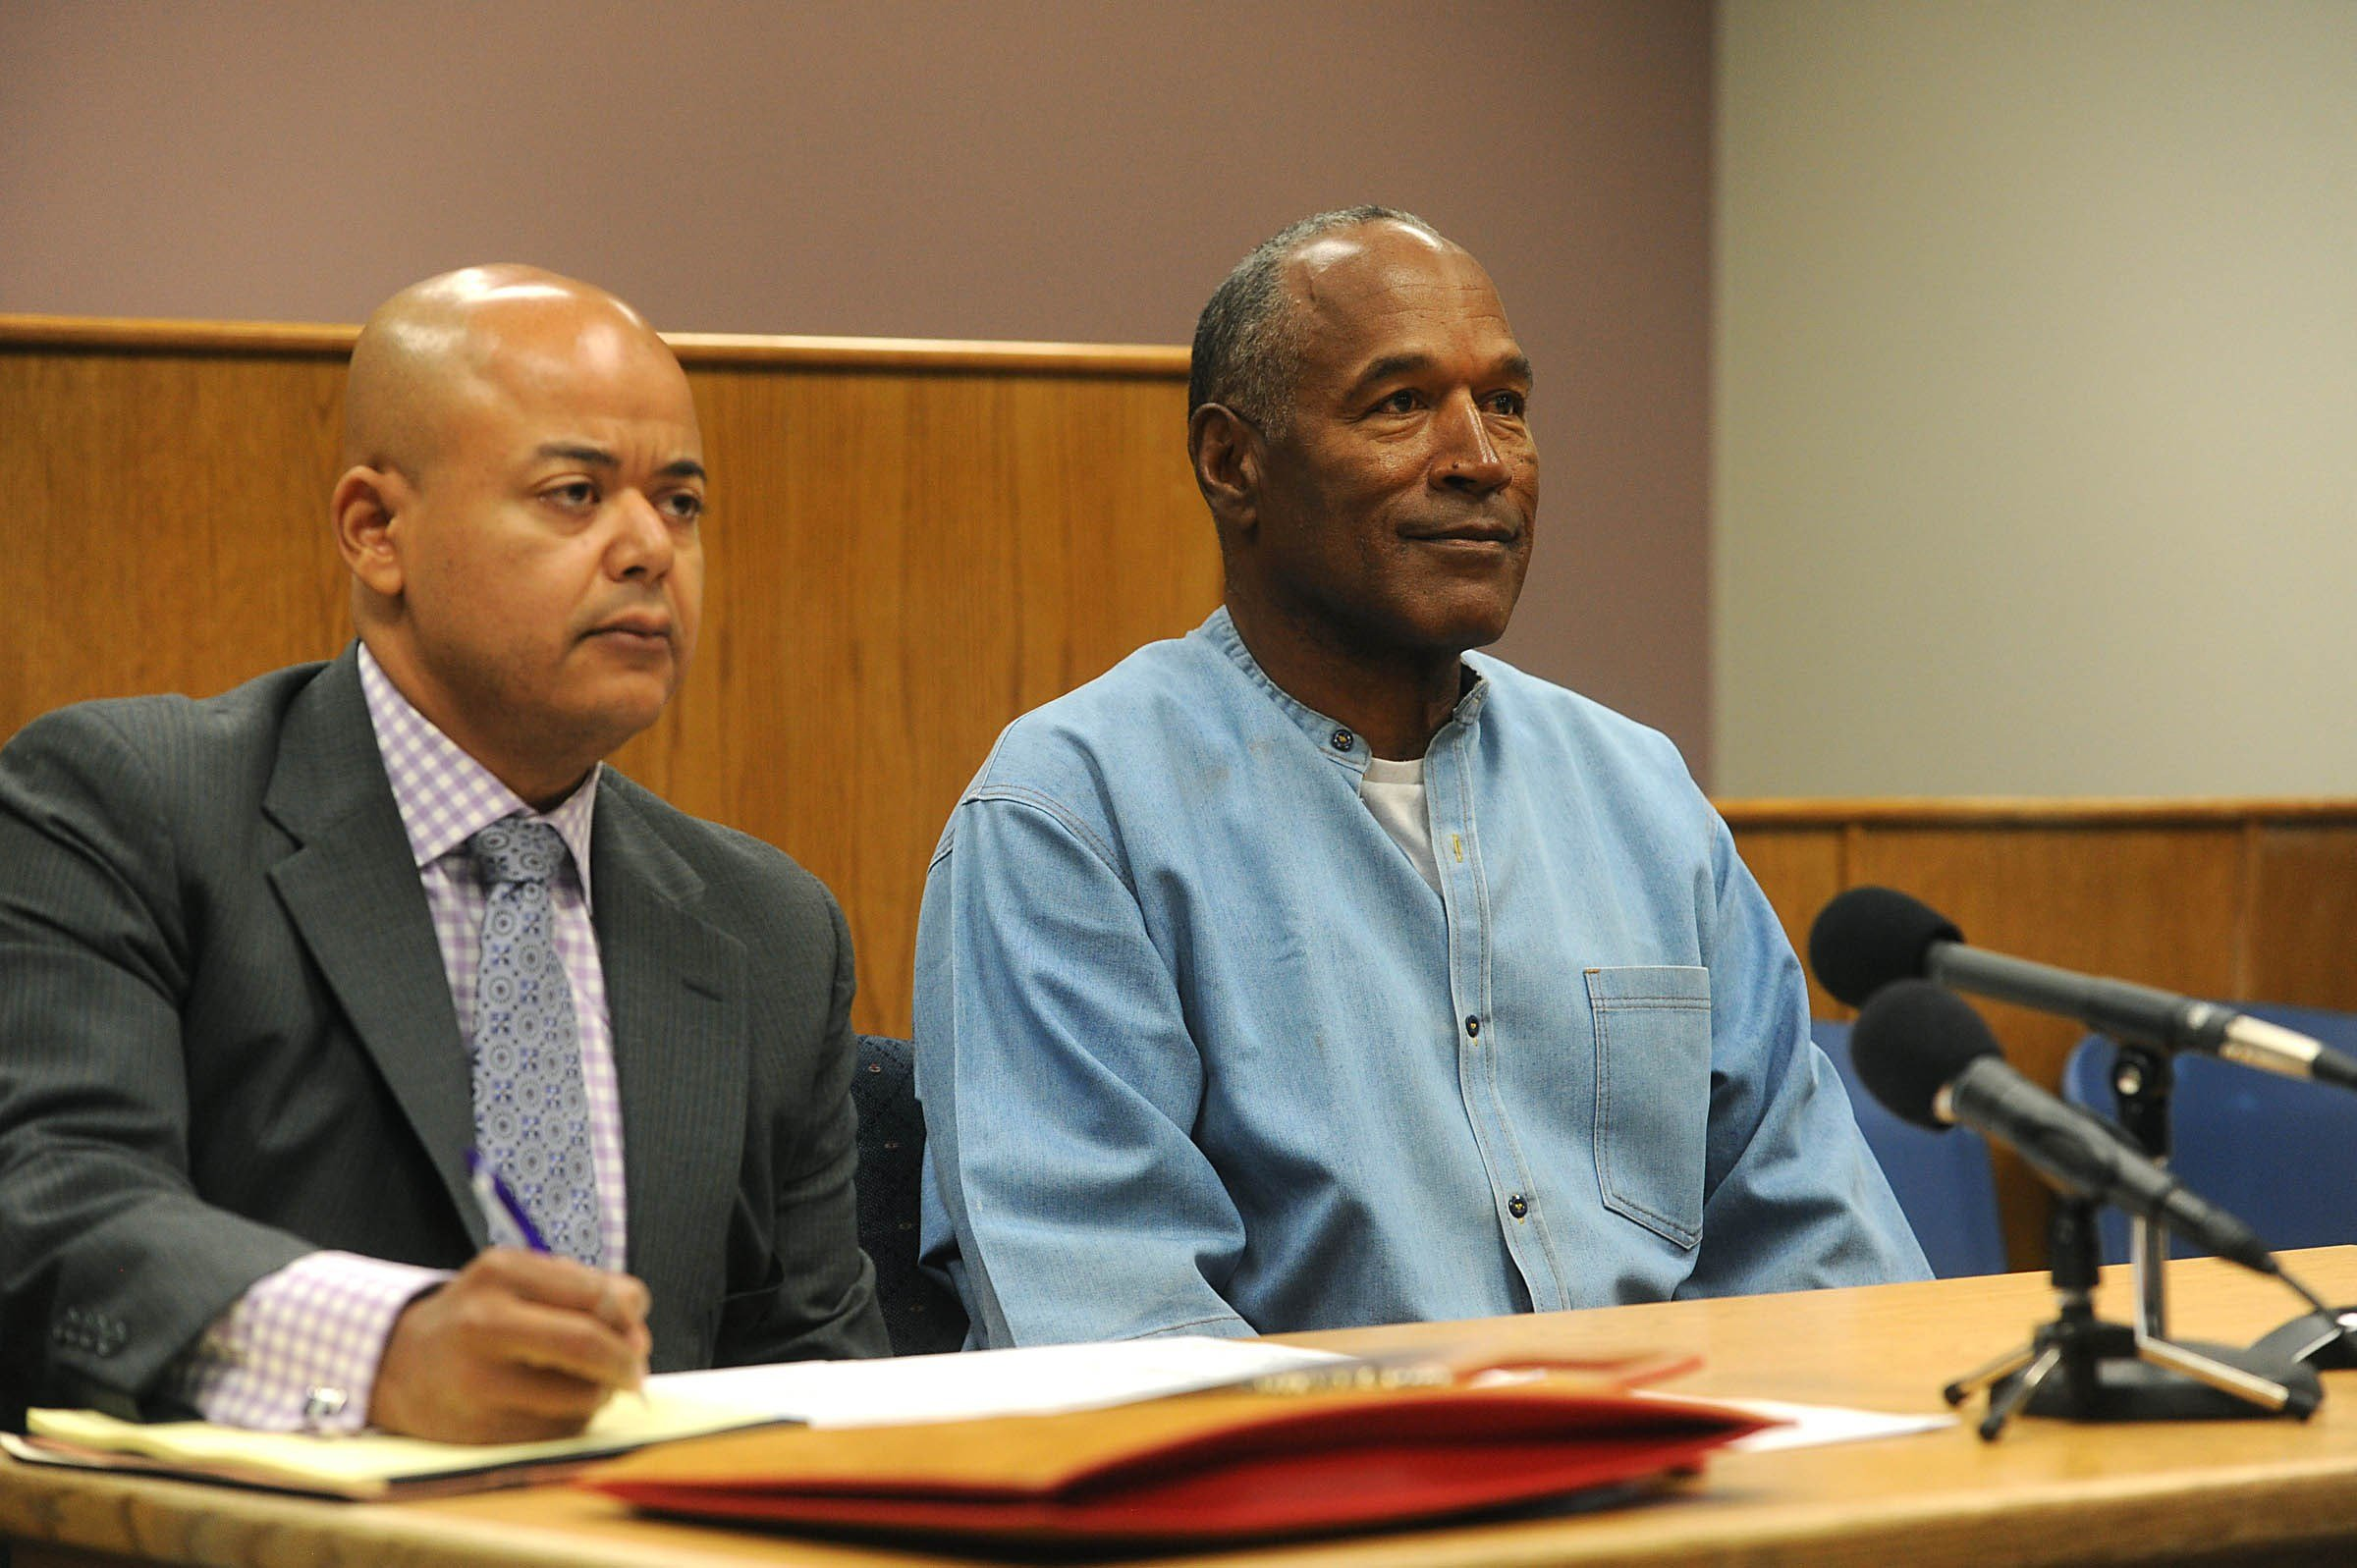 OJ Simpson in Parole Hearing room at Lovelock Correctional Facility